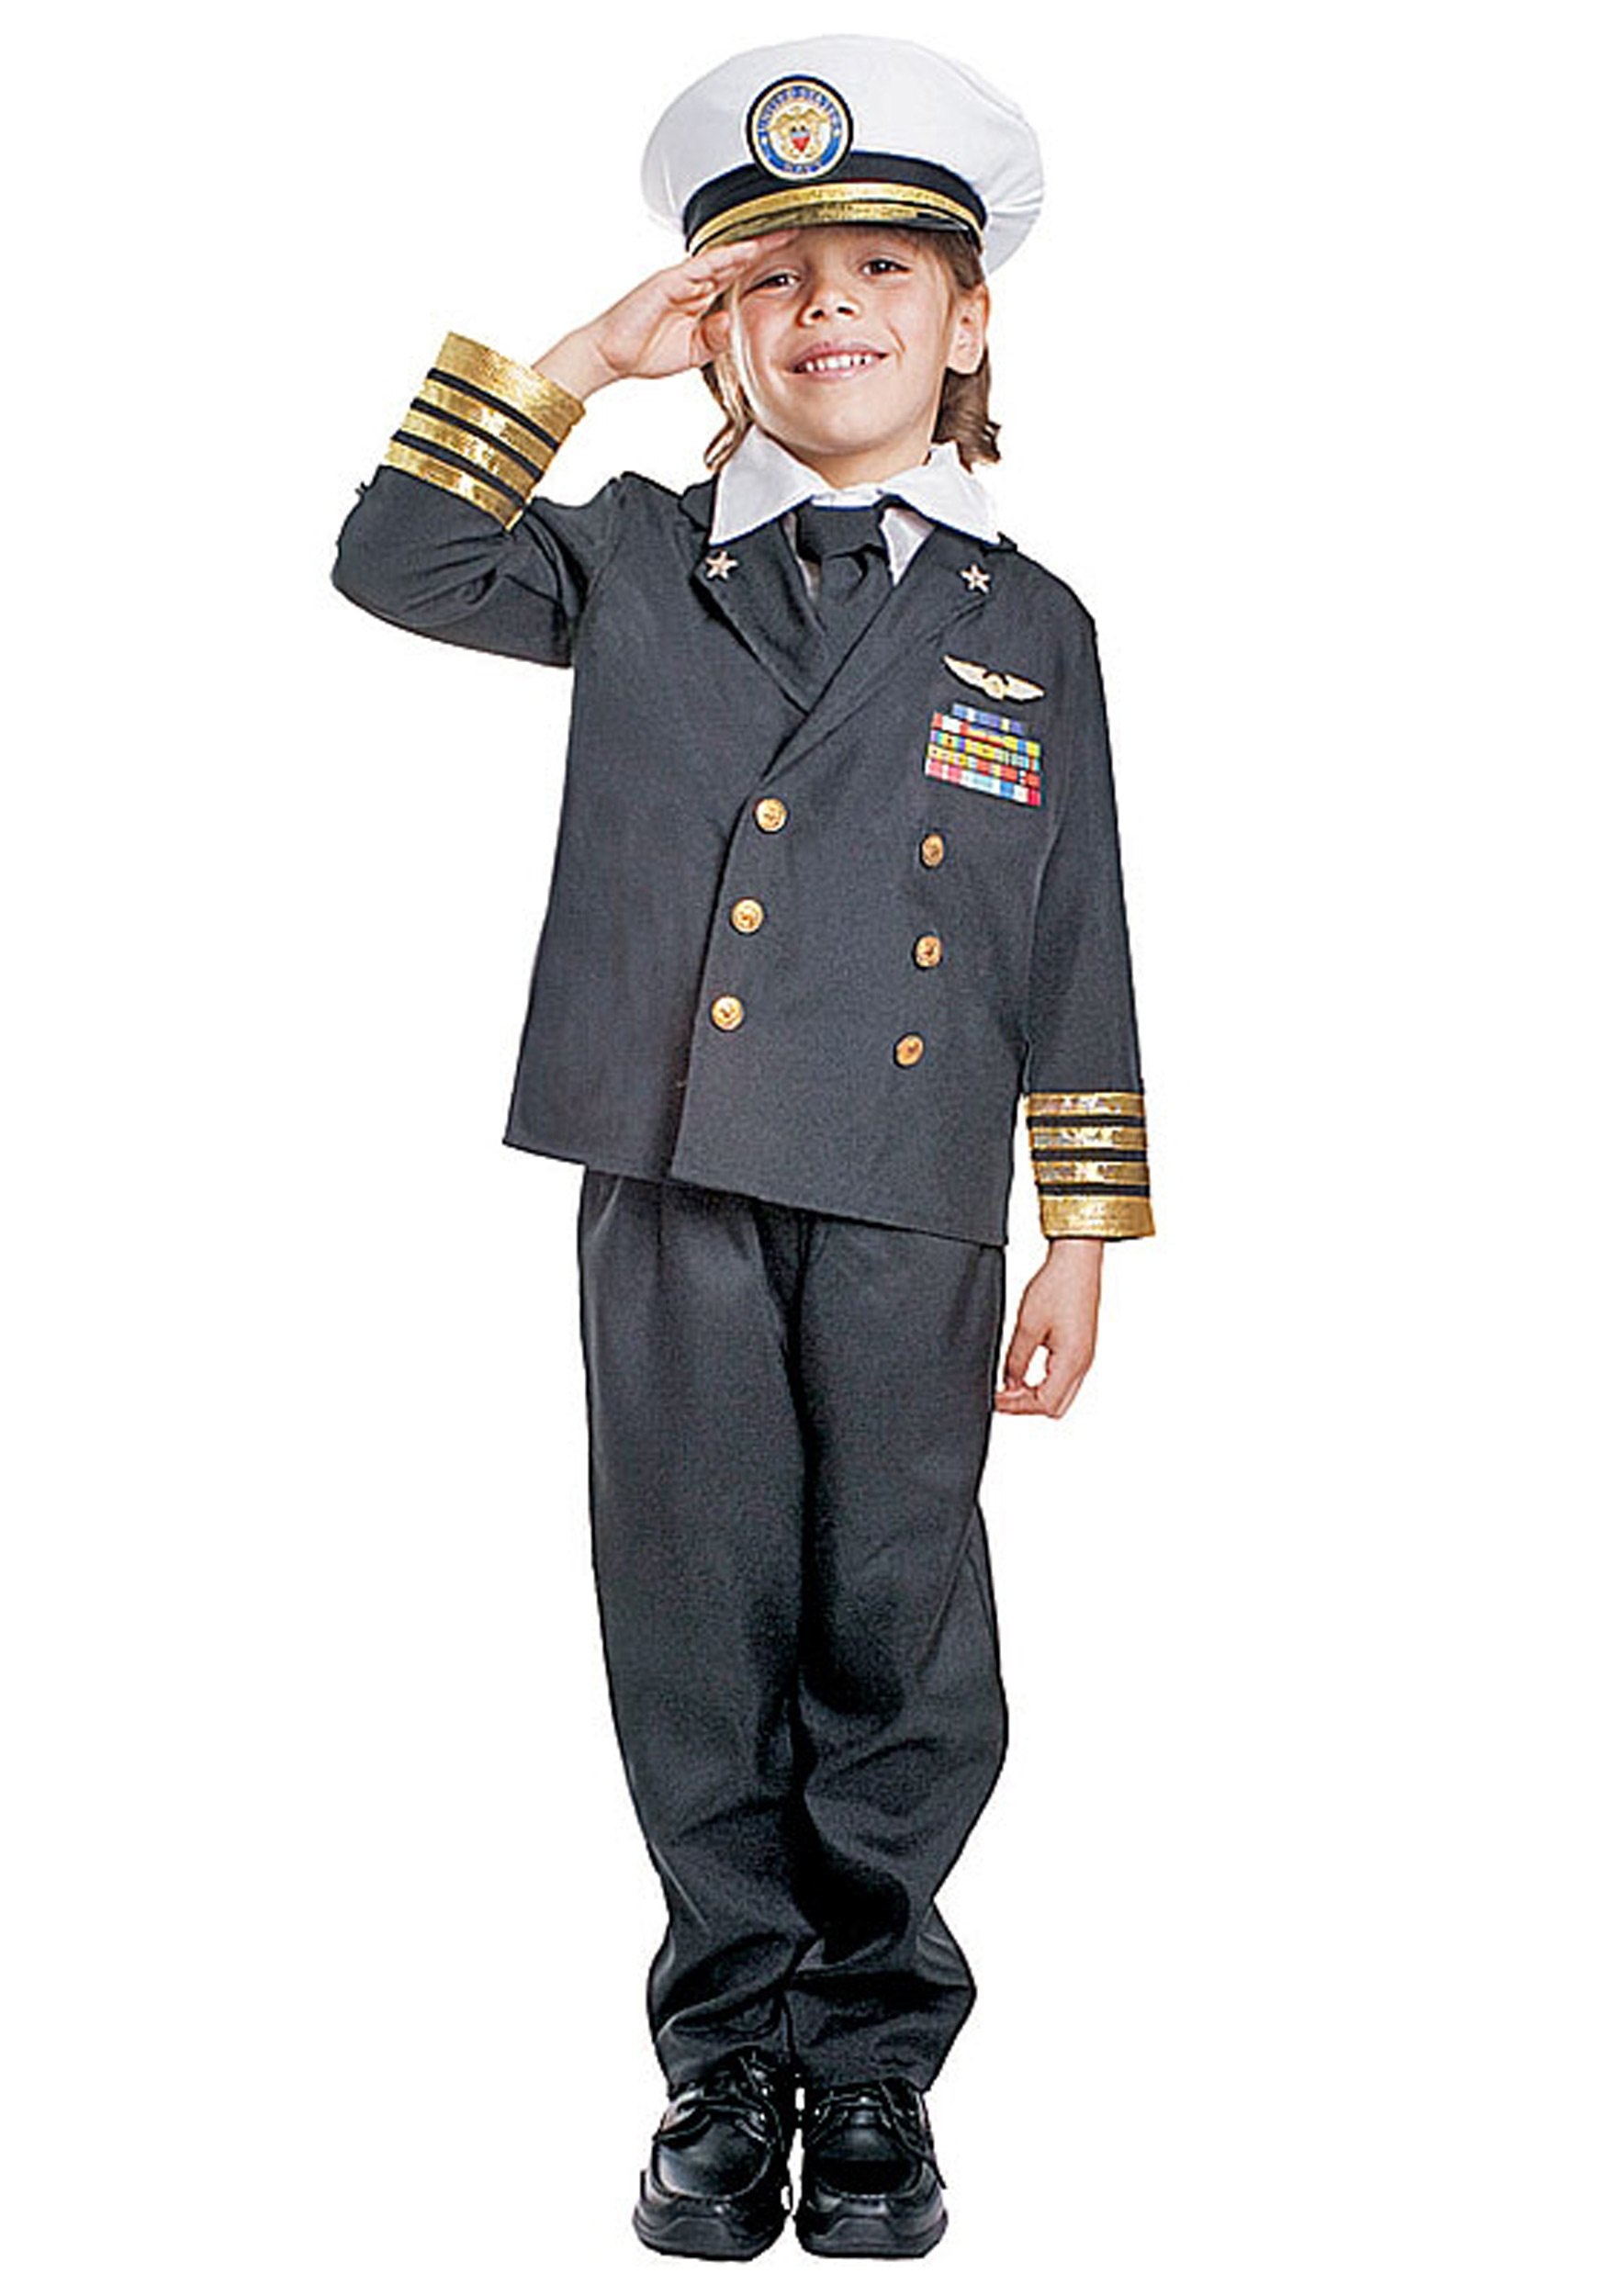 Officially Licensed Navy clothing for kids. Quality constructed clothing.